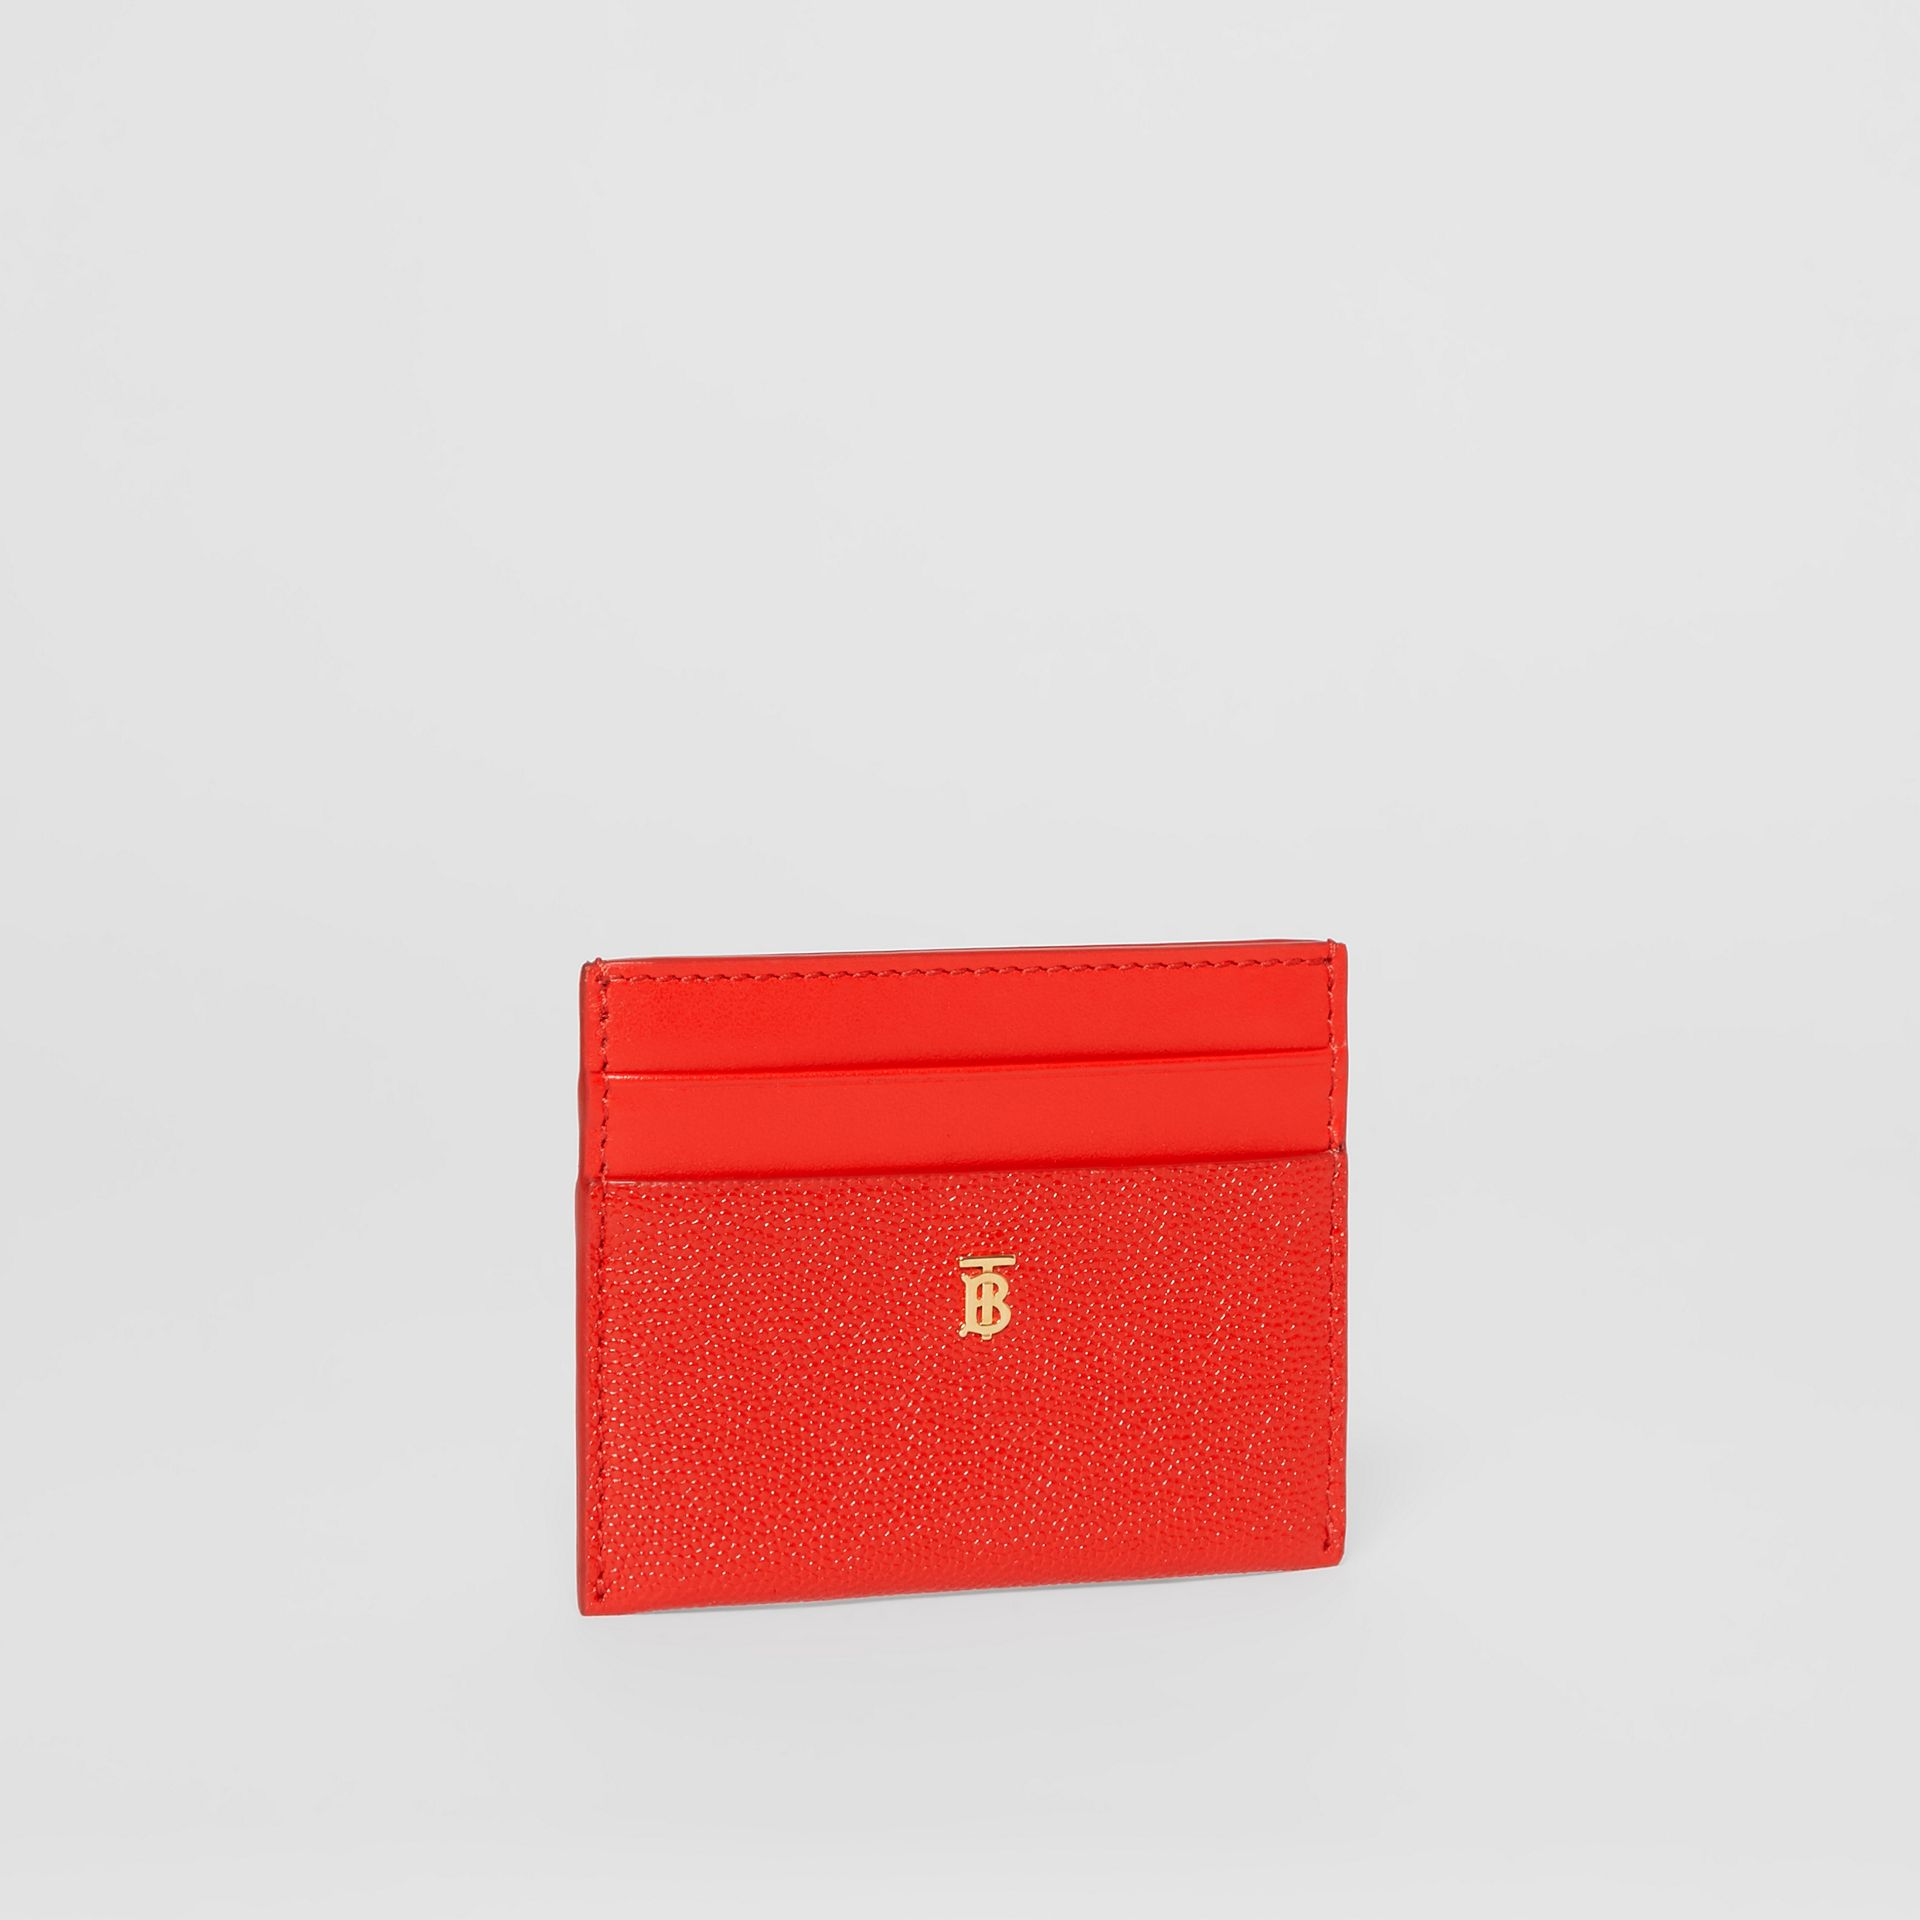 Monogram Motif Leather Card Case in Bright Red - Women | Burberry - gallery image 3